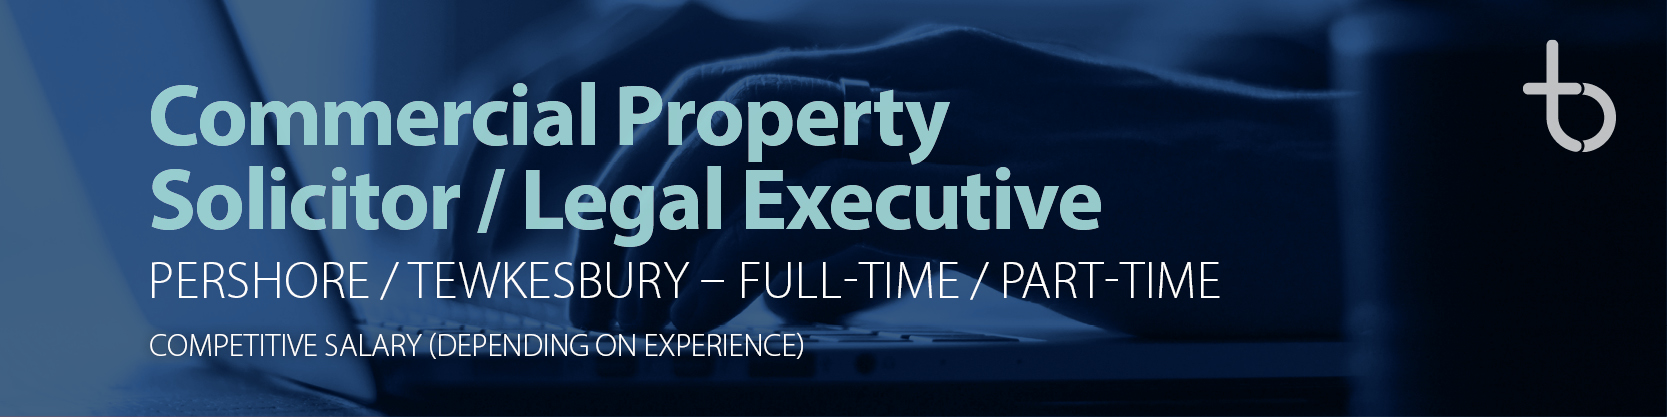 Pershore Tewkesbury Commercial Property Solicitor